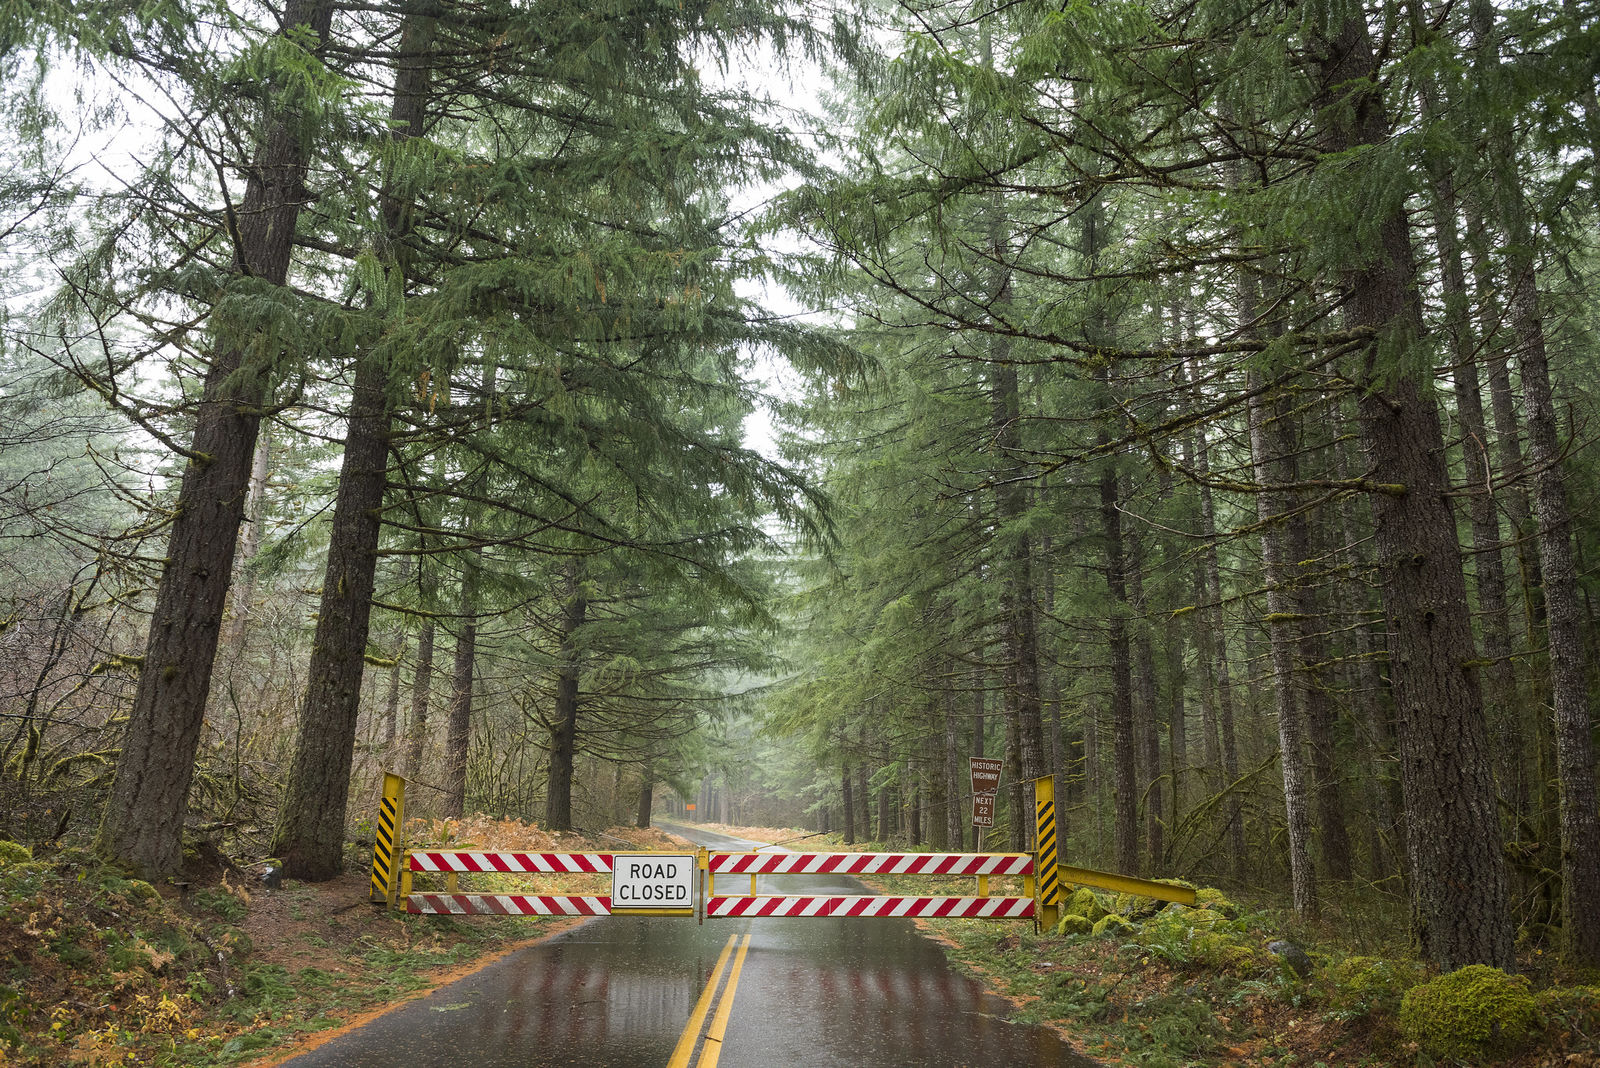 The Old McKenzie Pass Highway closed to all traffic for the winter November 12, 2019. It is scheduled to reopen to car traffic June 15, 2020 - weather permitting. (Greg Westergaard, ODOT CC by 2.0)